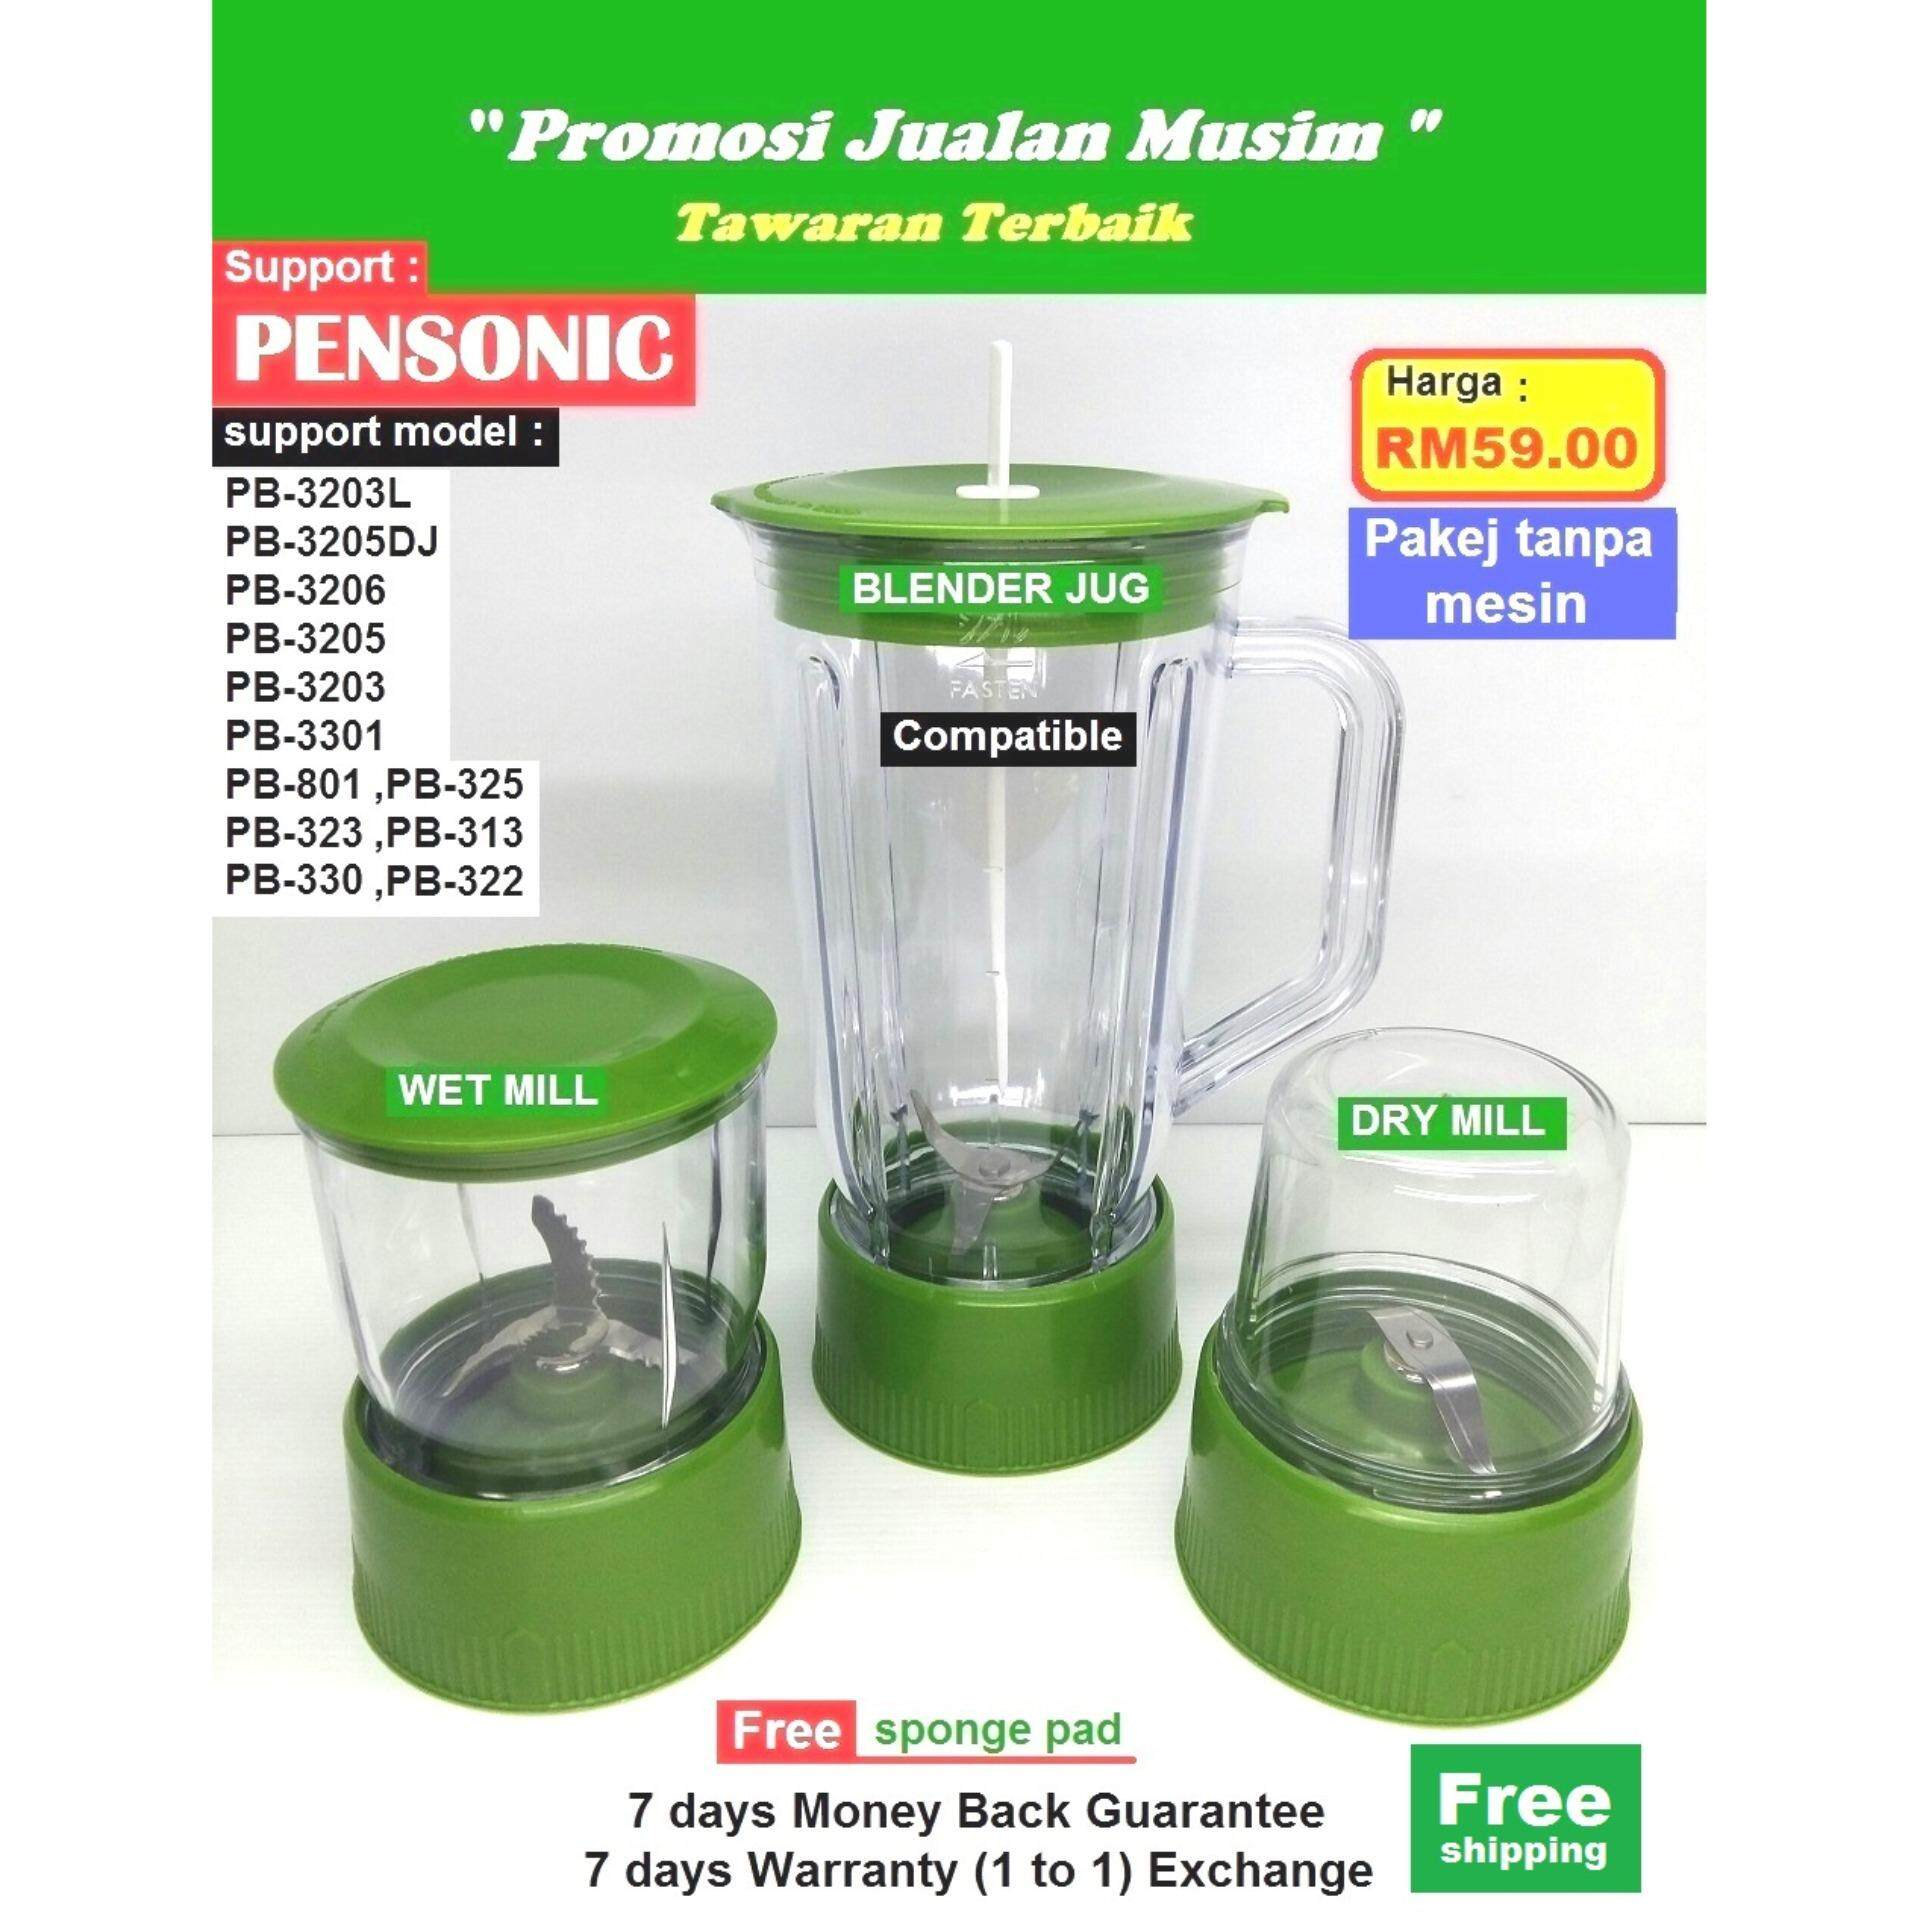 Blenders For The Best Price At Lazada Malaysia Tokebi Food Processor Oem Blender Jug Wet Mill Dry Support Pensonic And Other Brands